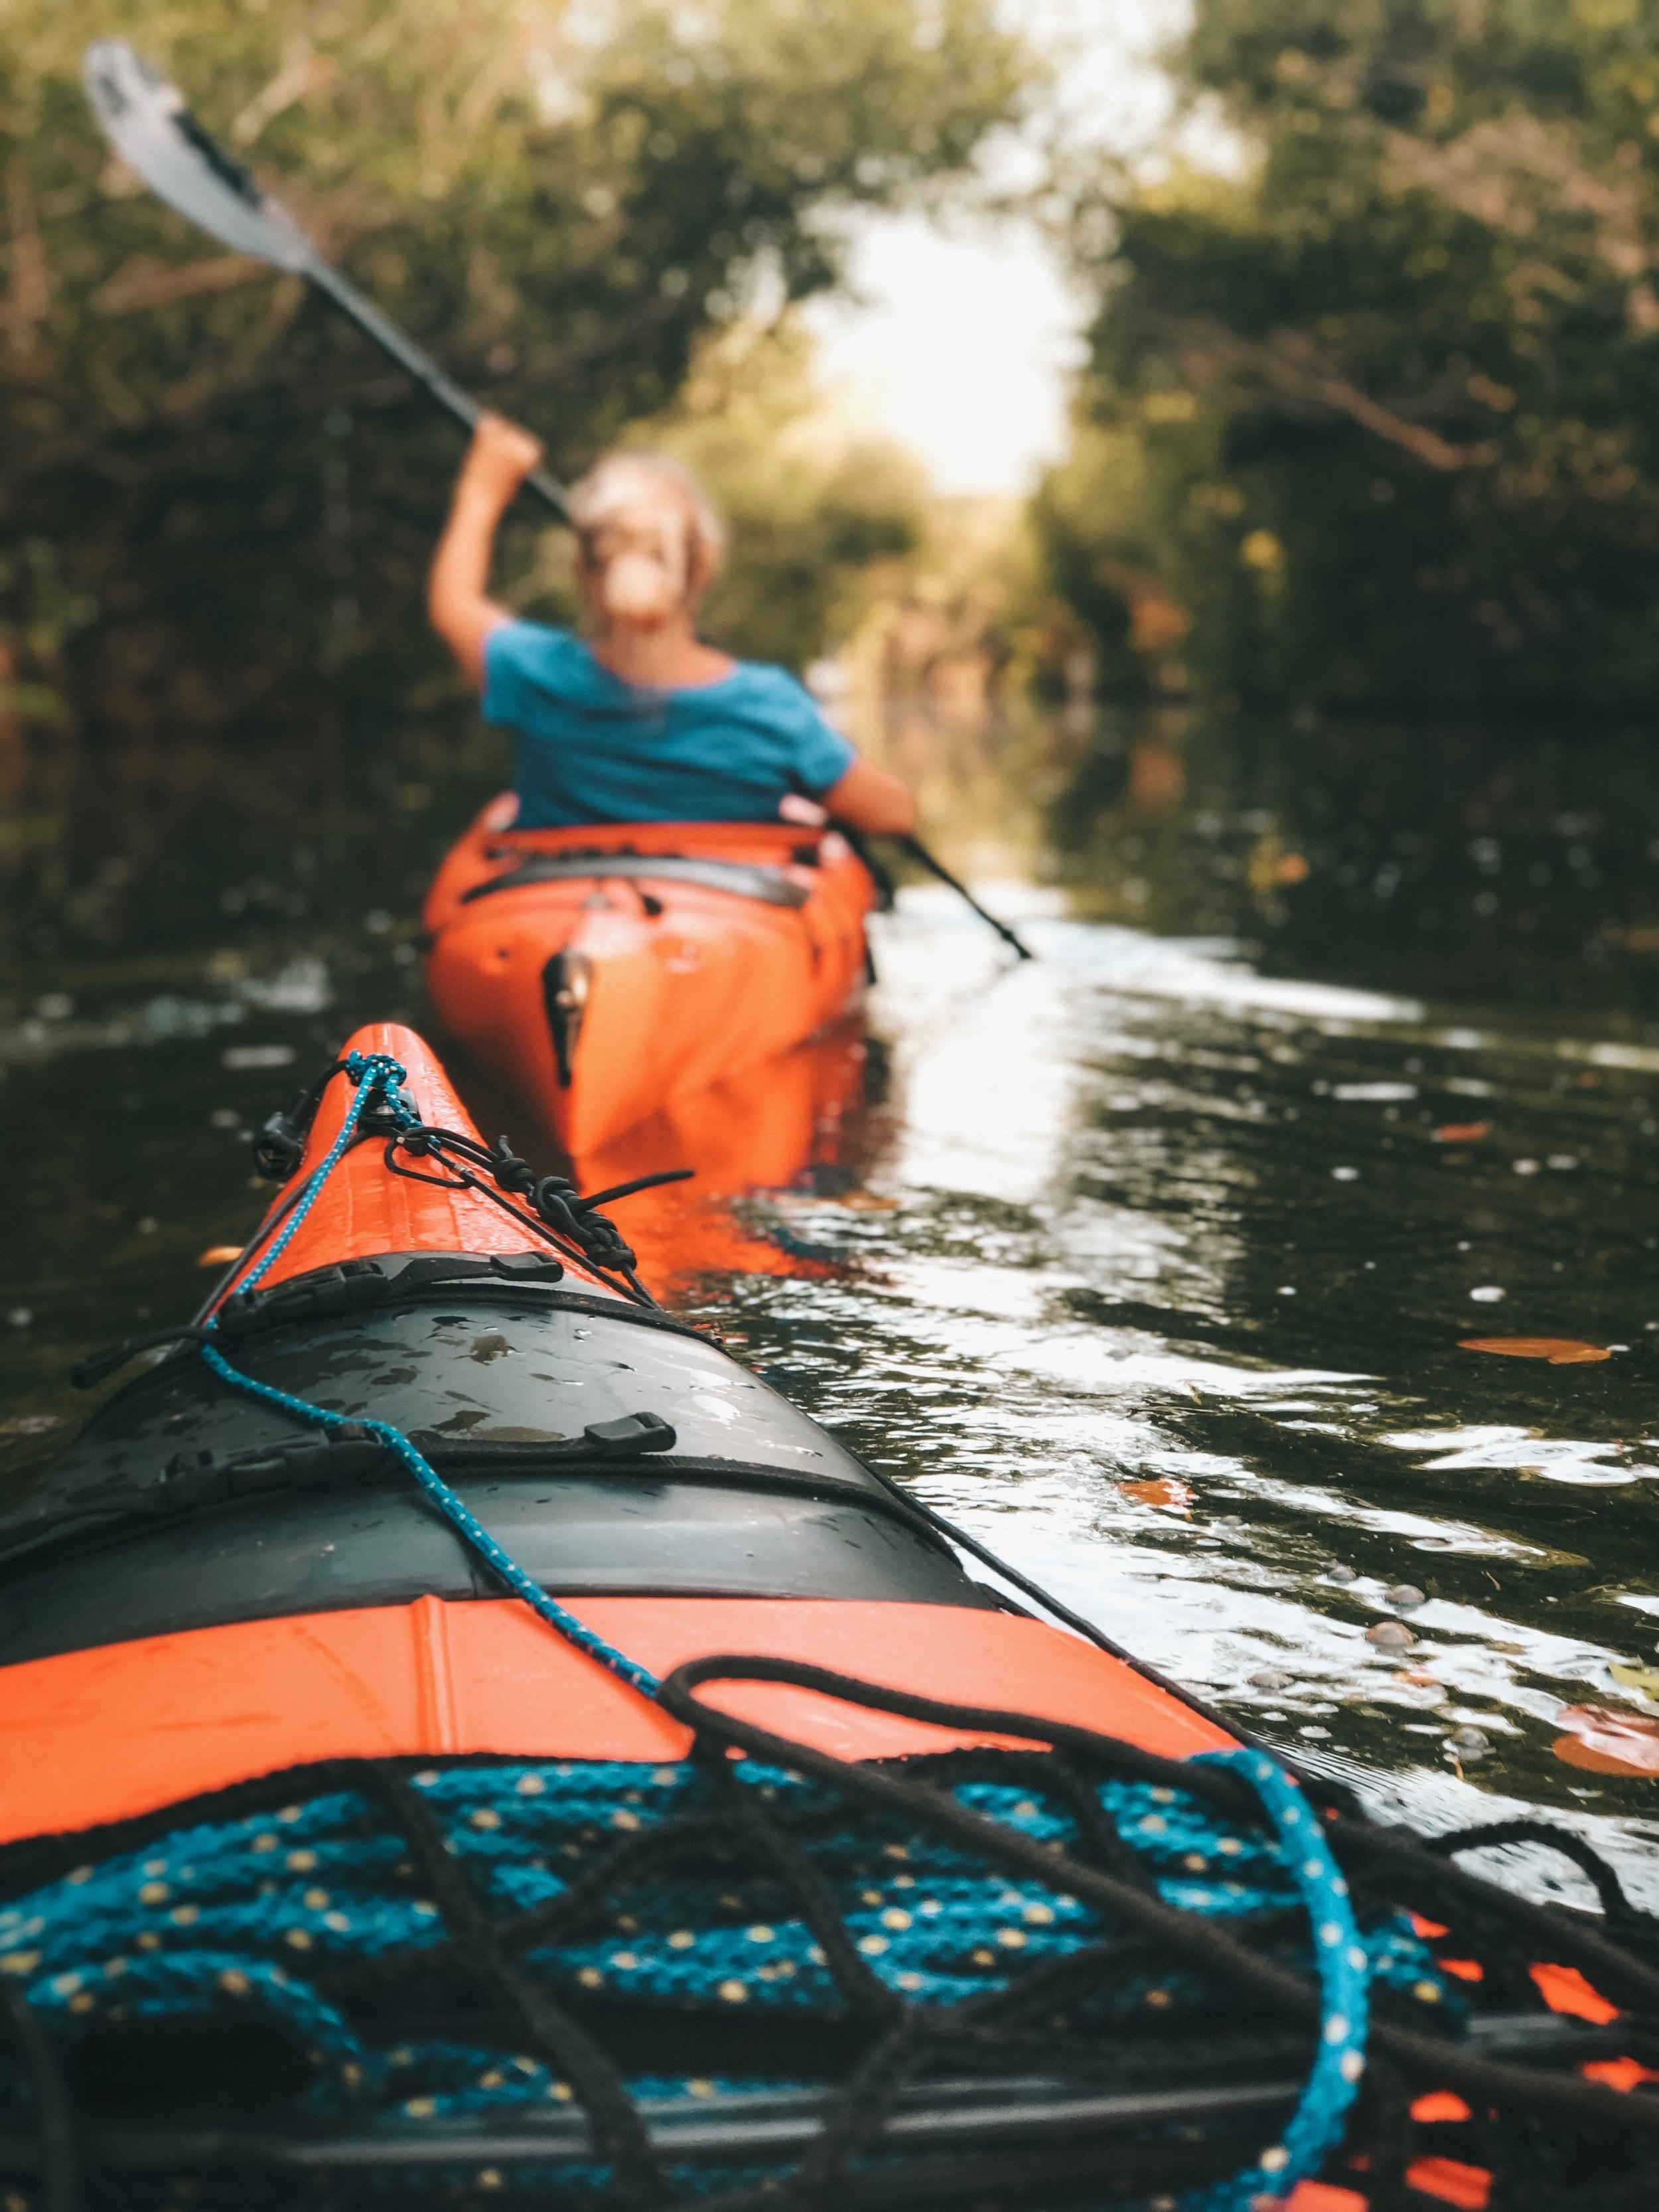 With female participation in adventure sports on the rise and more guiding companies offering women-specific instruction, it will hopefully be only a matter of time before we see new demographics in the guiding industry